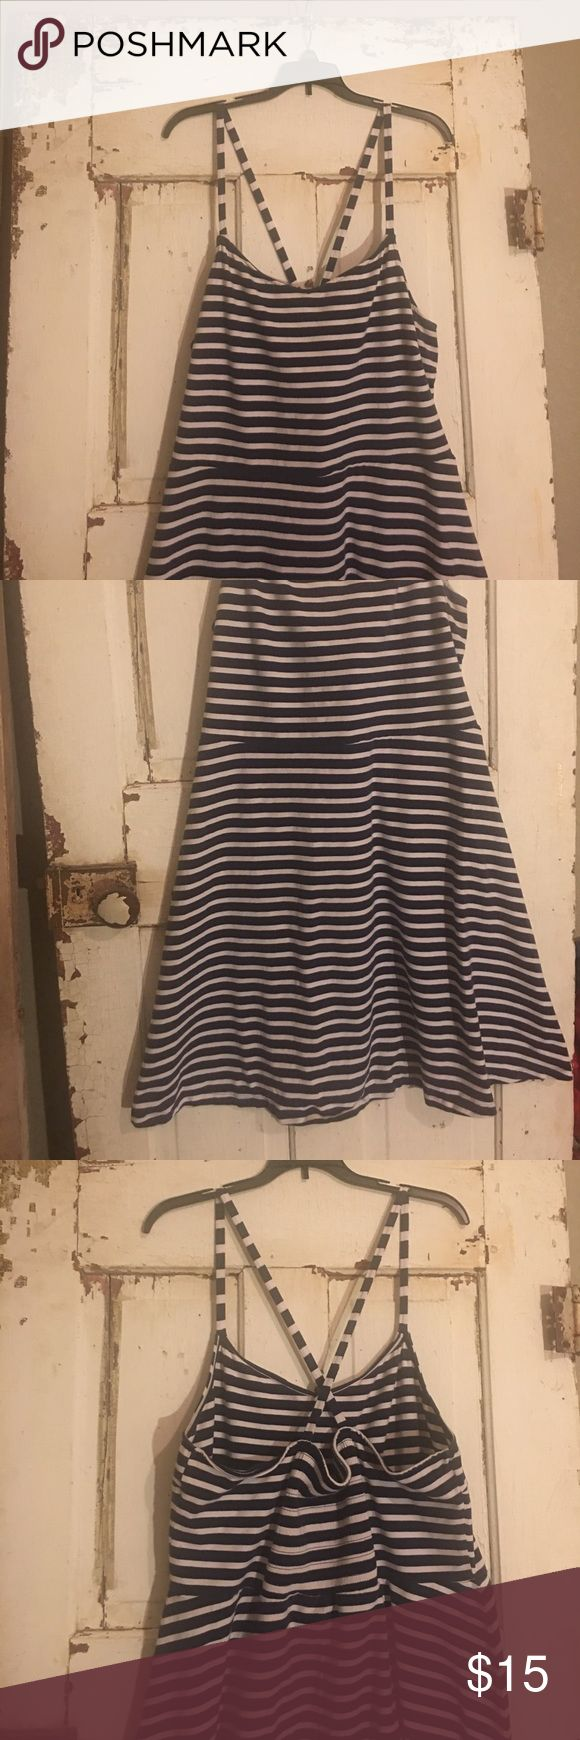 Nautical Summer Dress Navy & White striped, A Line Fit Stretchy Cotton Dress. Super comfy and casual. Worn a few times... I actually got engaged in this dress on July 4th lol! Hits above knee. Old Navy Dresses Midi